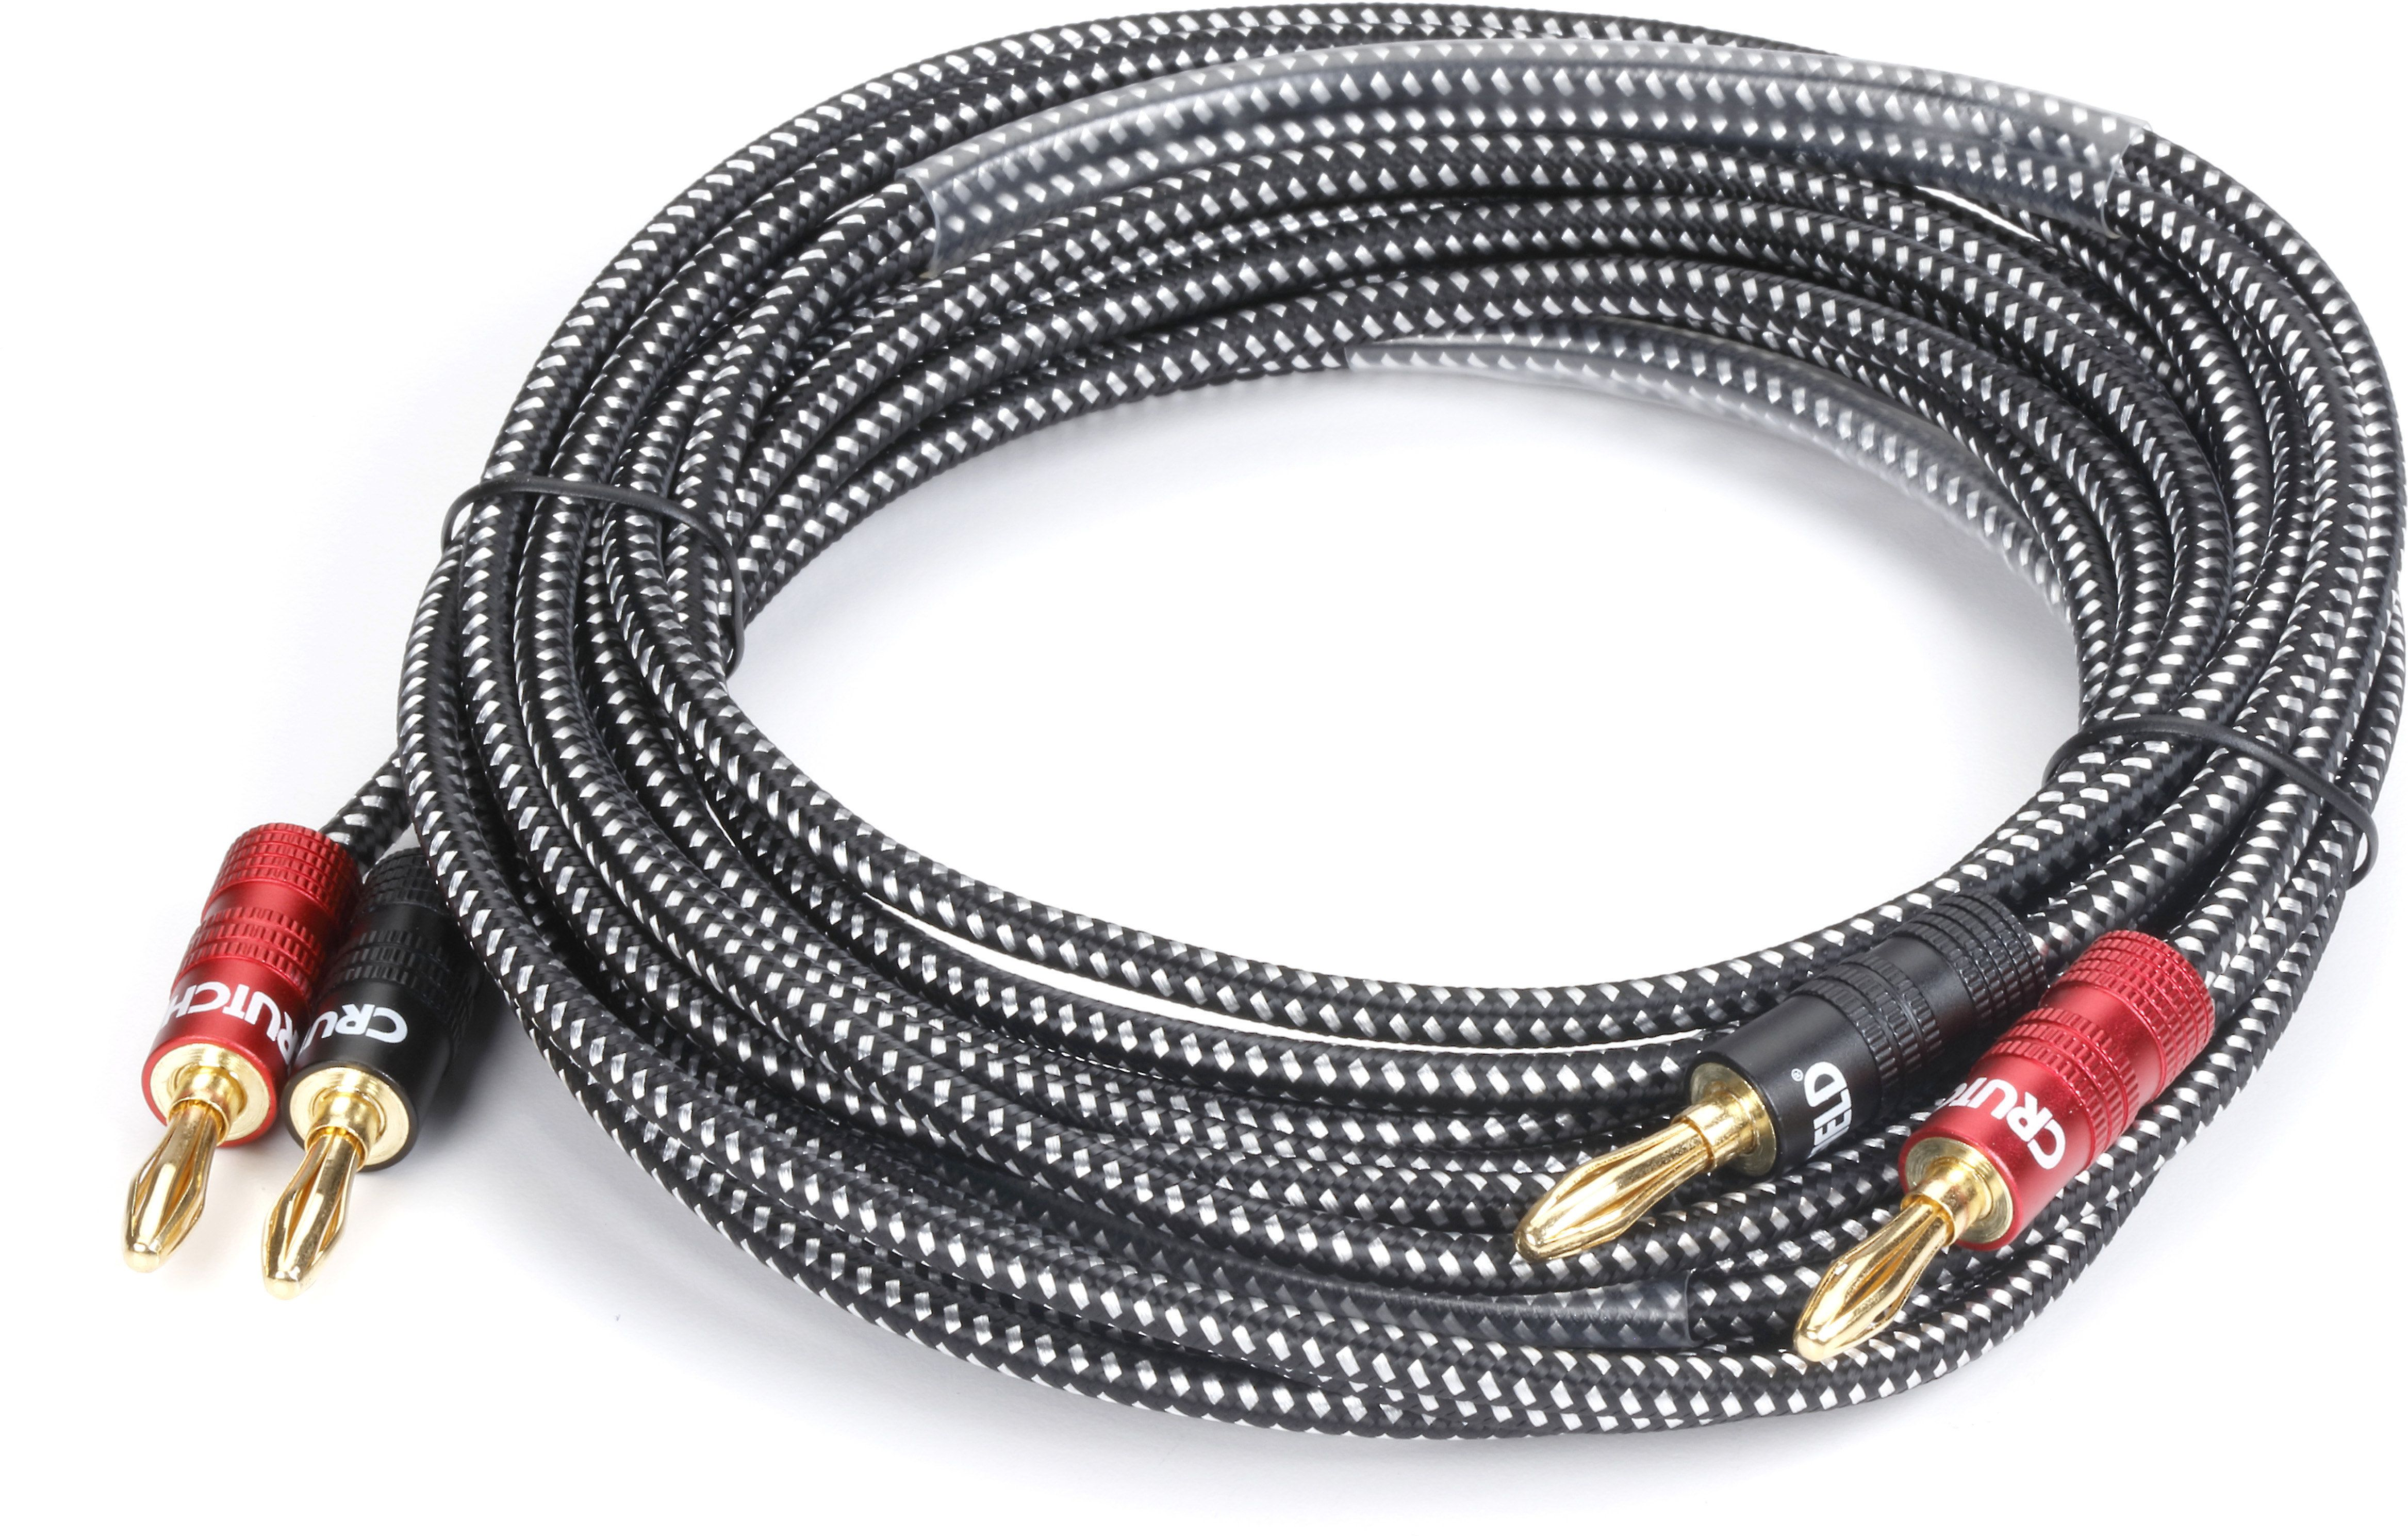 small resolution of our crutchfield speaker wire with pre attached banana plugs provides an easy secure connection between your speakers and receiver or amplifier the